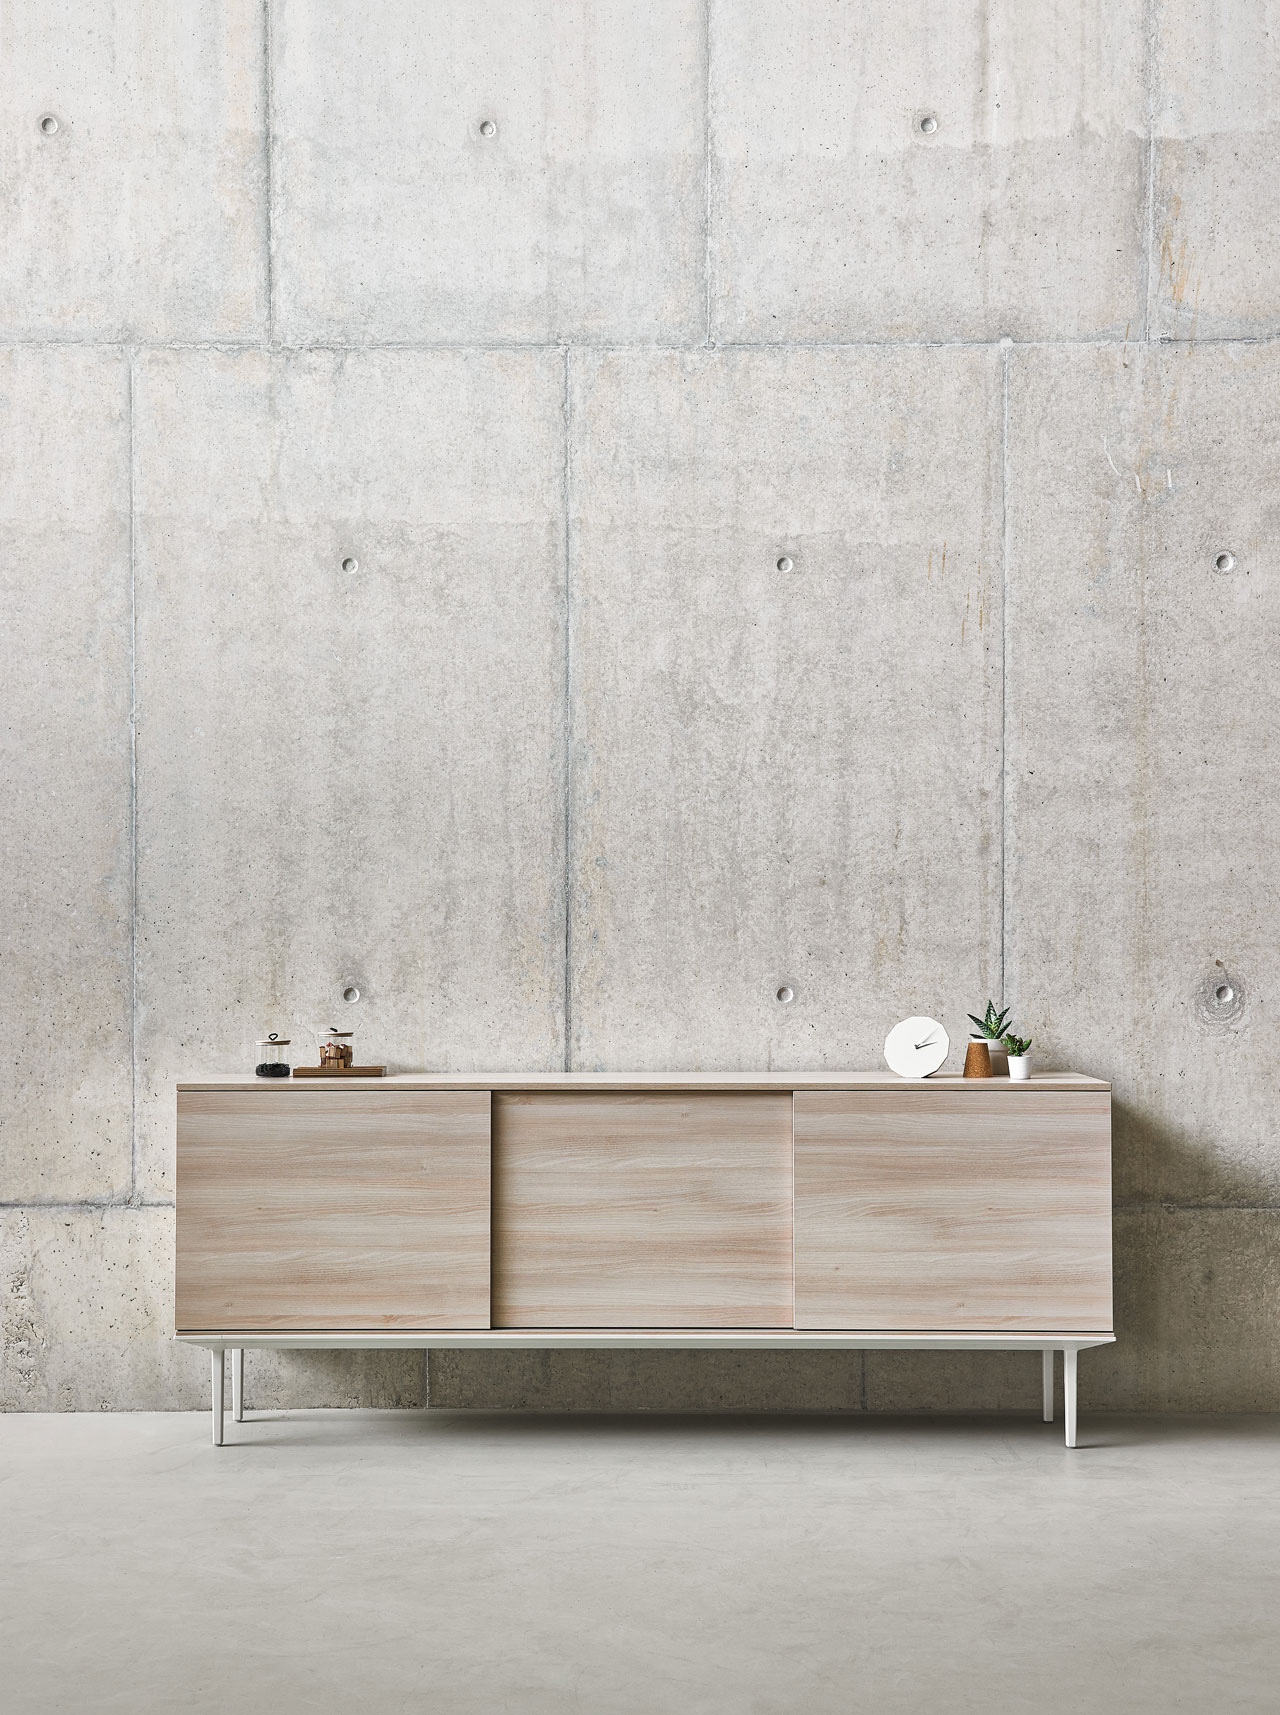 Longo is a contemporary storage solution by designers Ramos & Bassols.